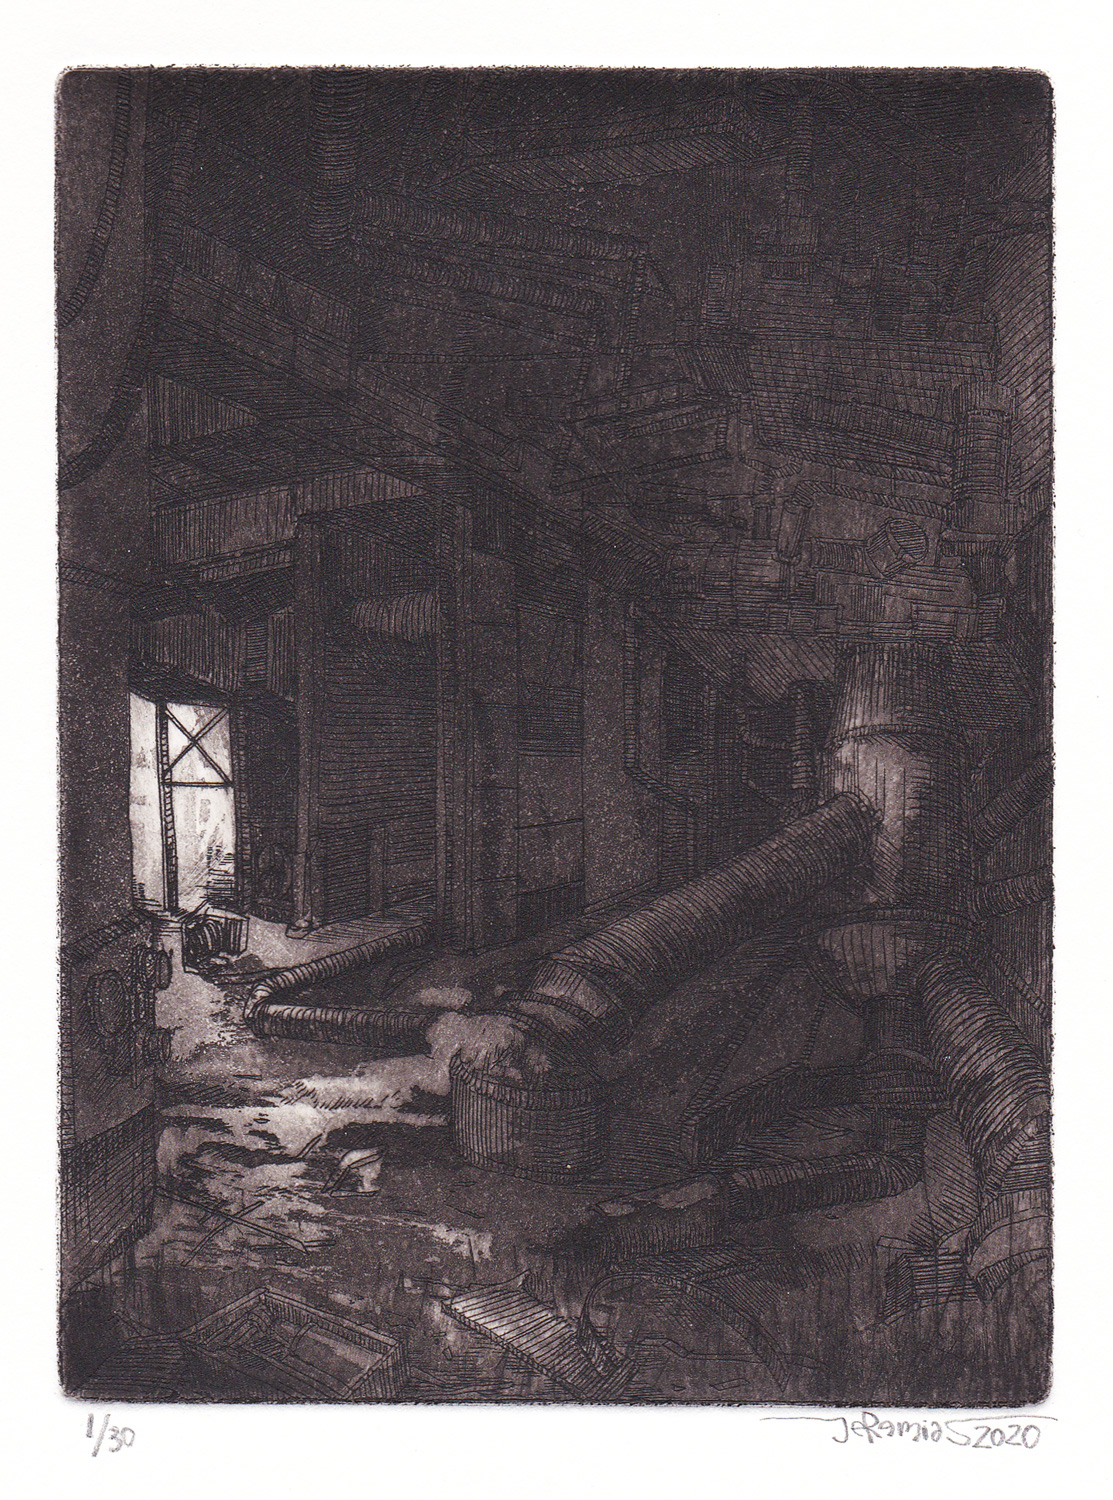 Azote - IN; 11 x 14,5 cm; etching; 2020